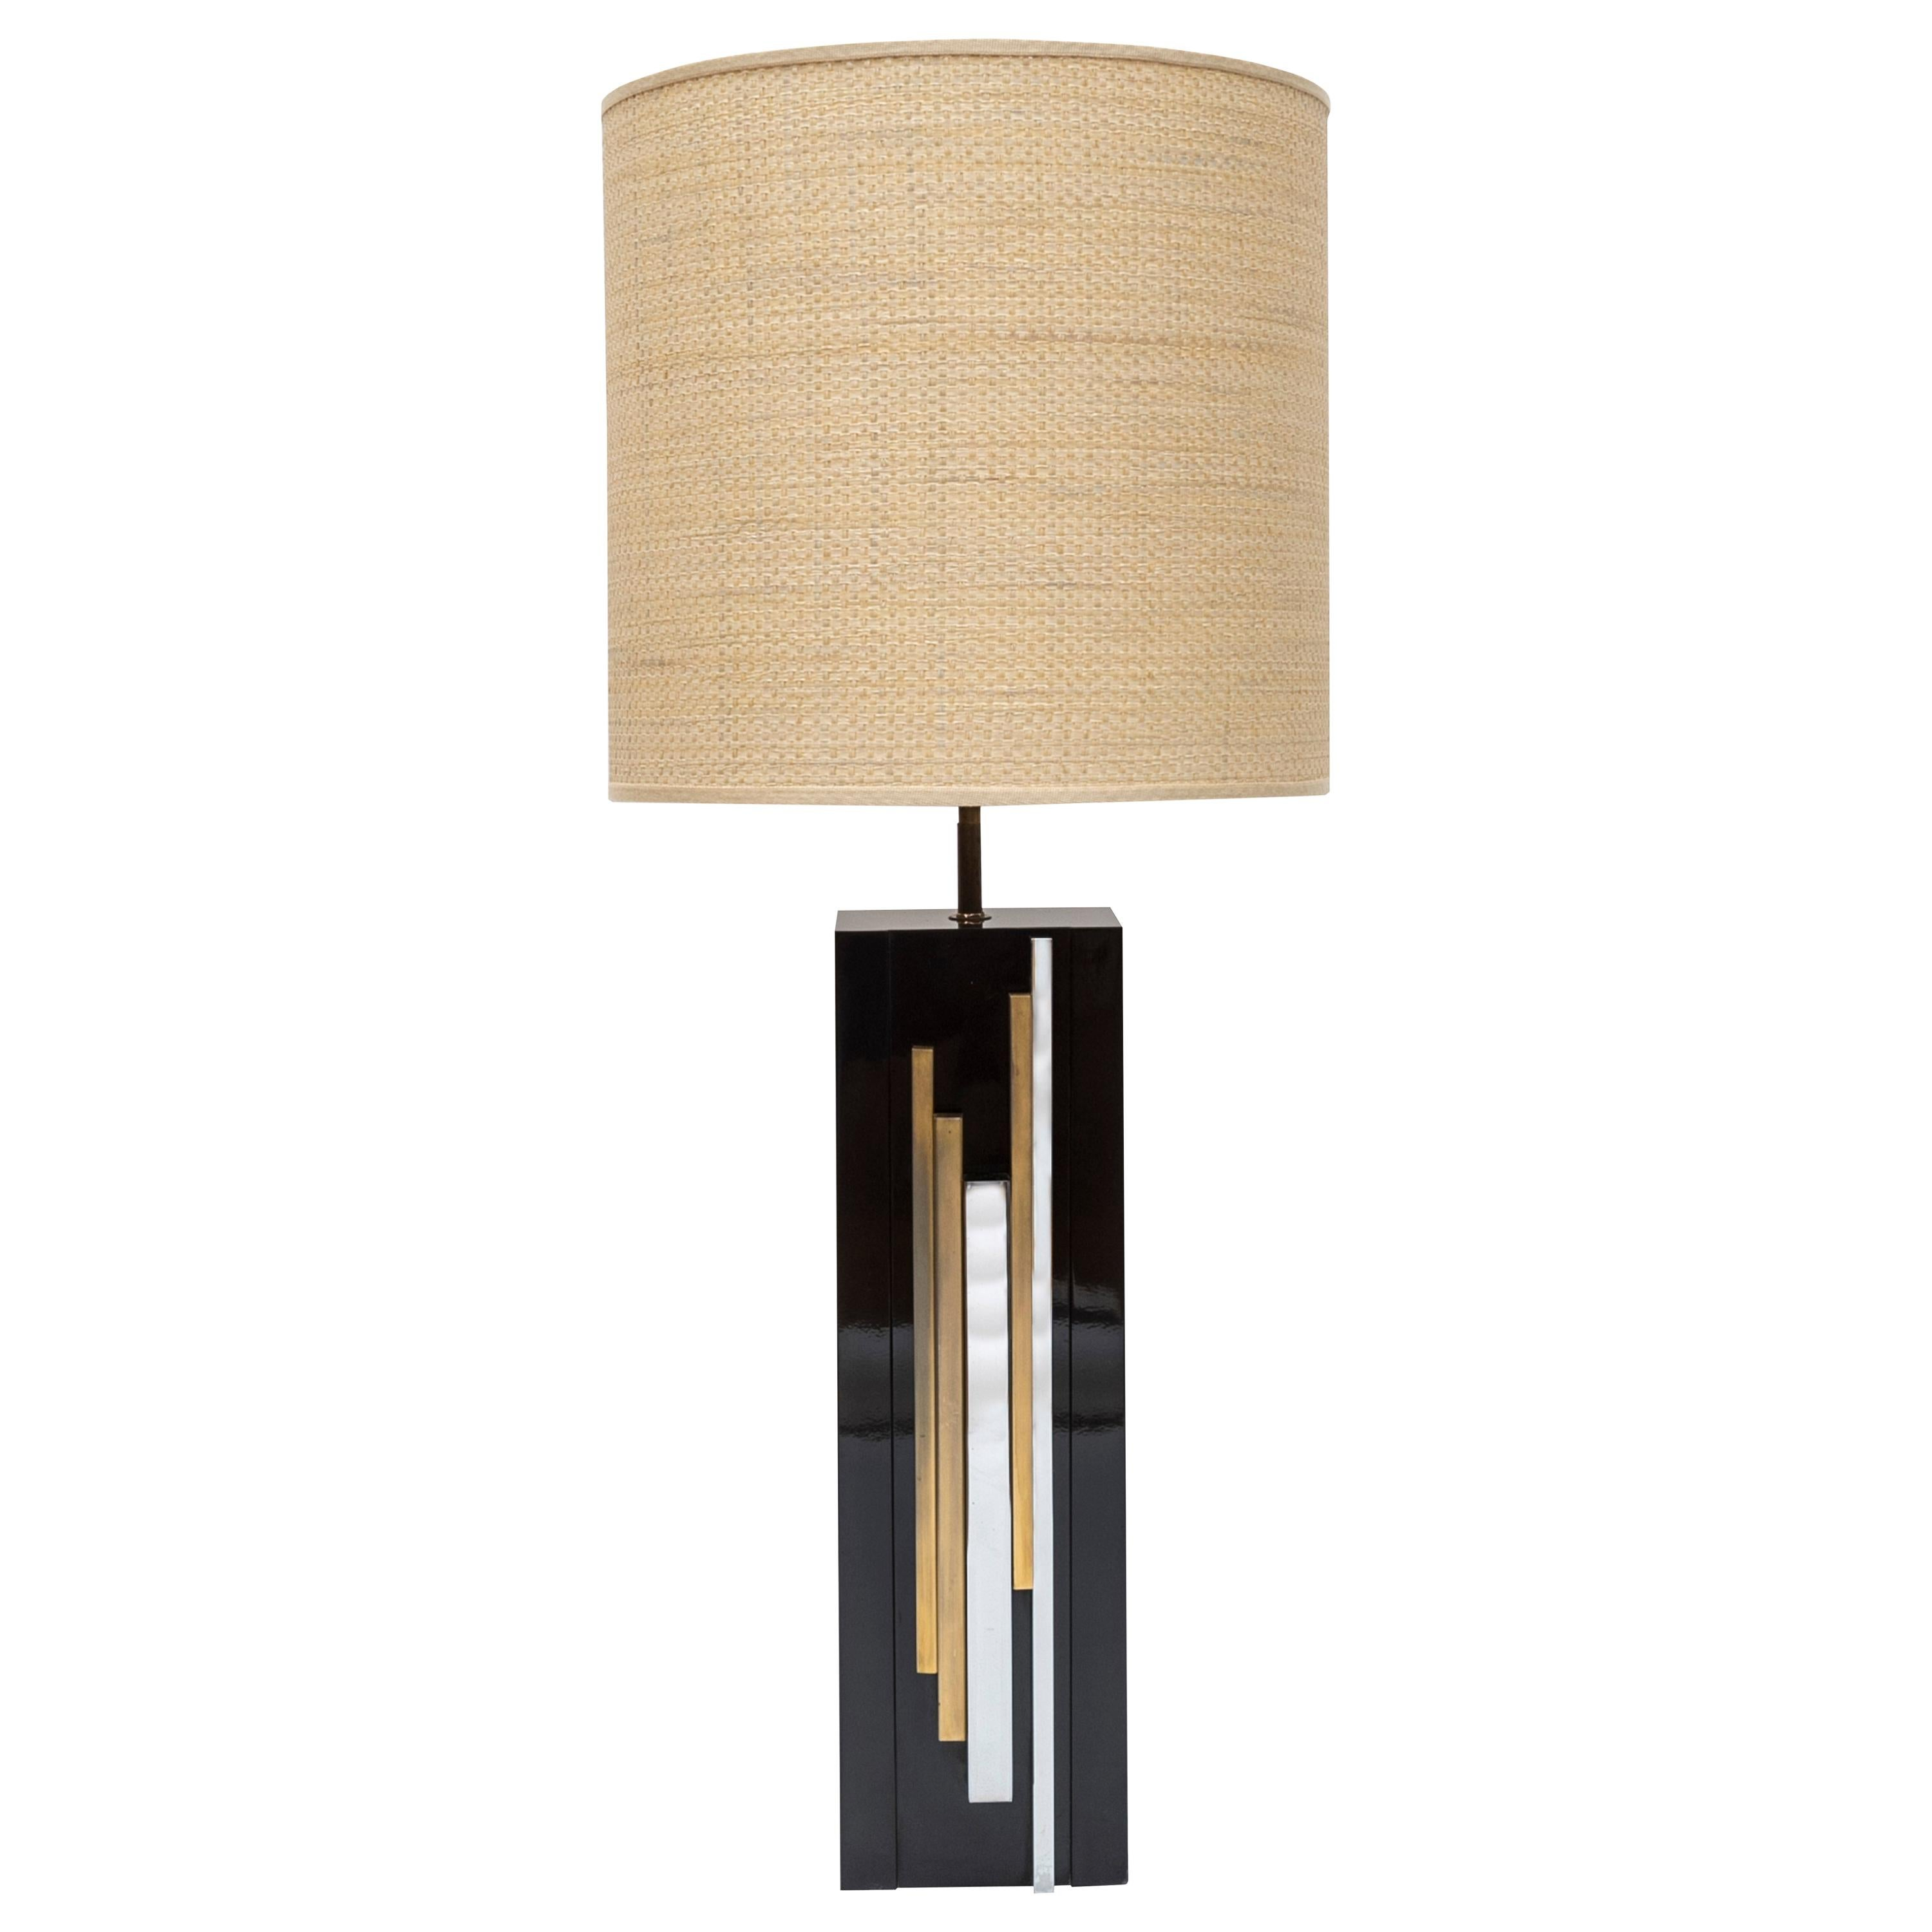 """1970s """"Space Age"""" Table Lamp by Maria Pergay"""